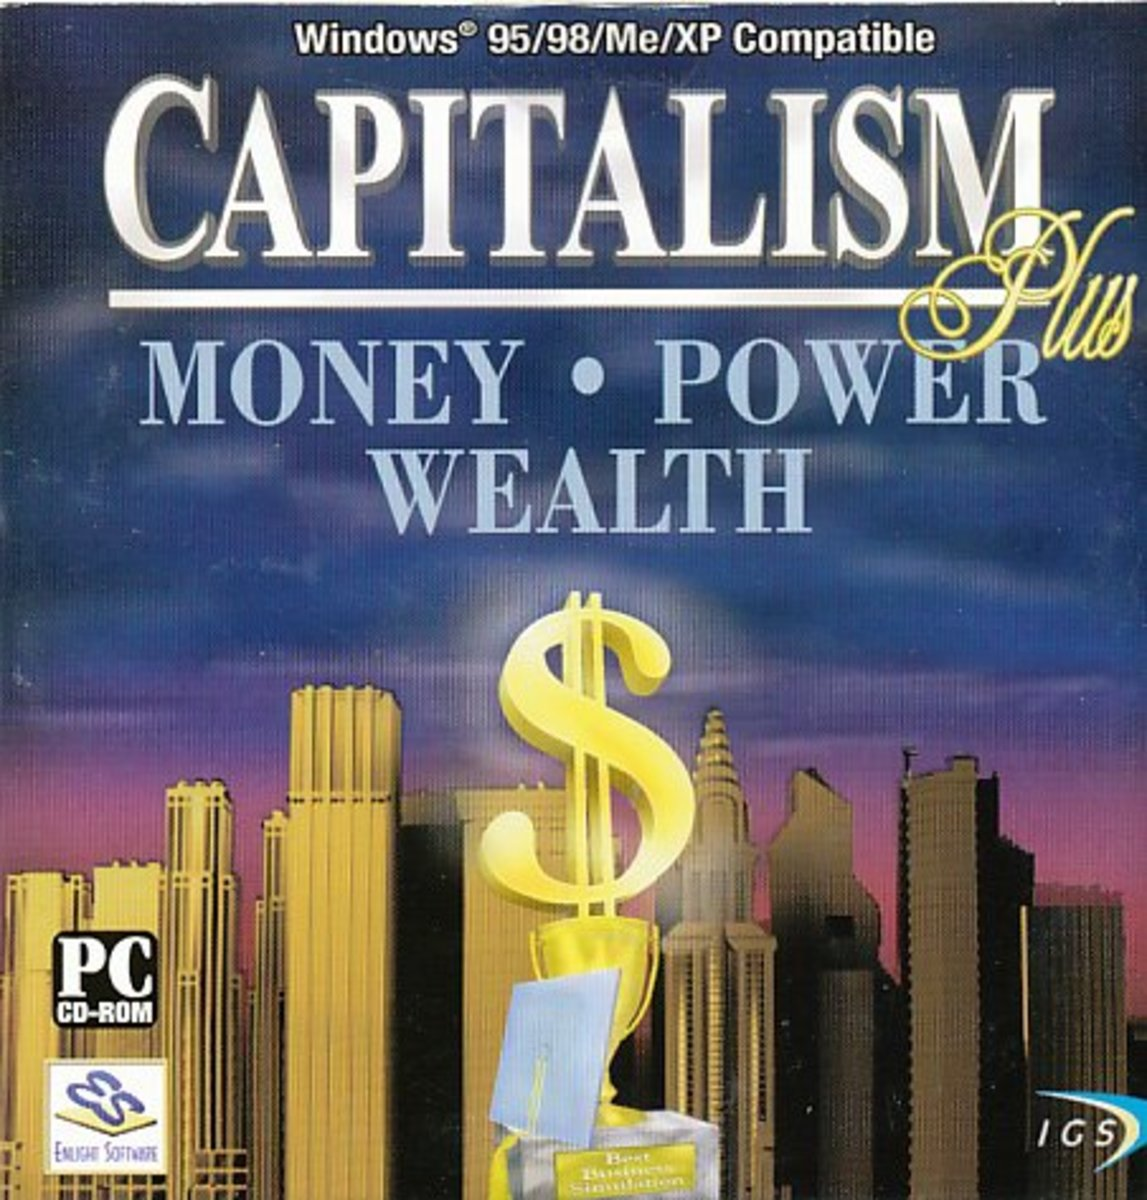 Capitalism Plus (fair use)